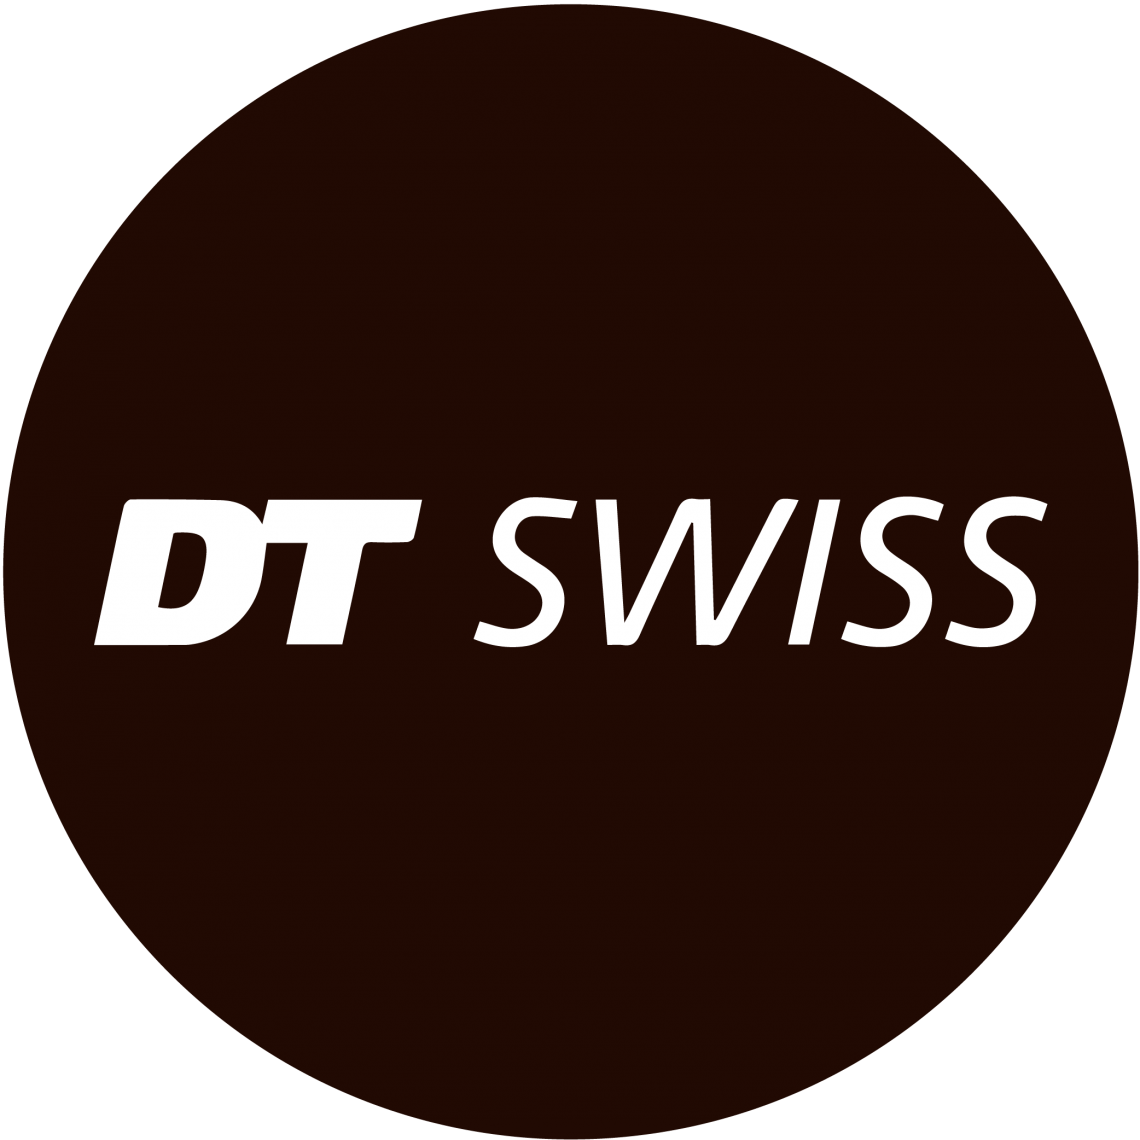 8bar crit 2019 sponsors dtswiss 1140x1140 - 8bar Pathfinder - Gravel - 1 day